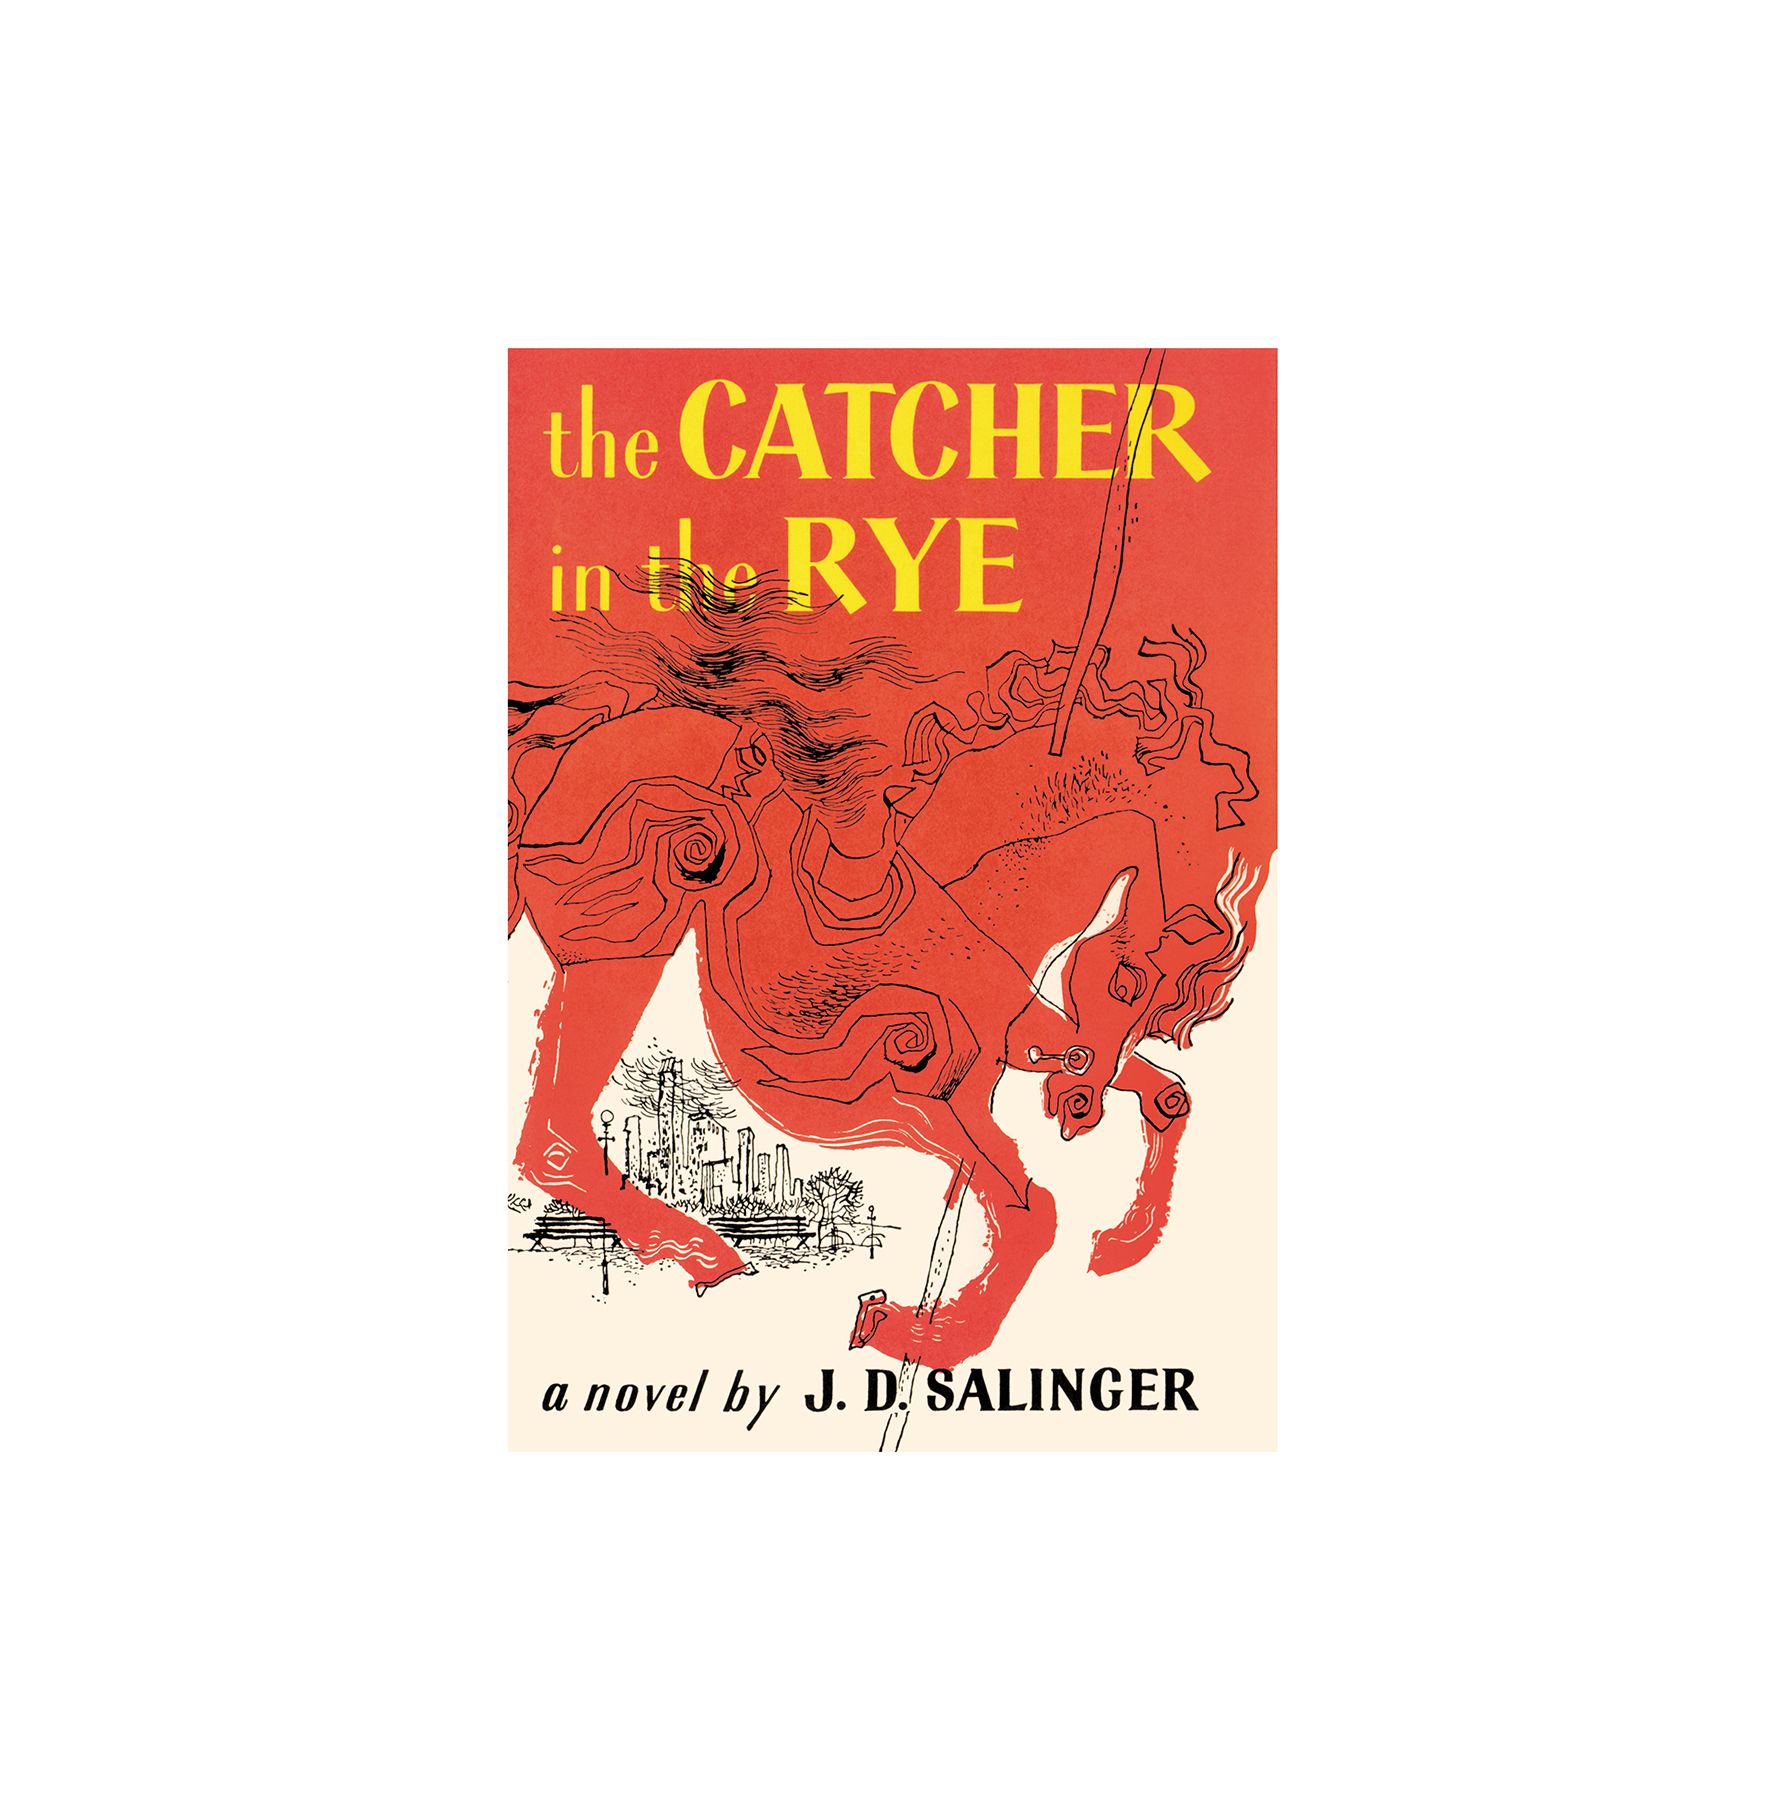 Catcher in the Rye, by J.D. Salinger